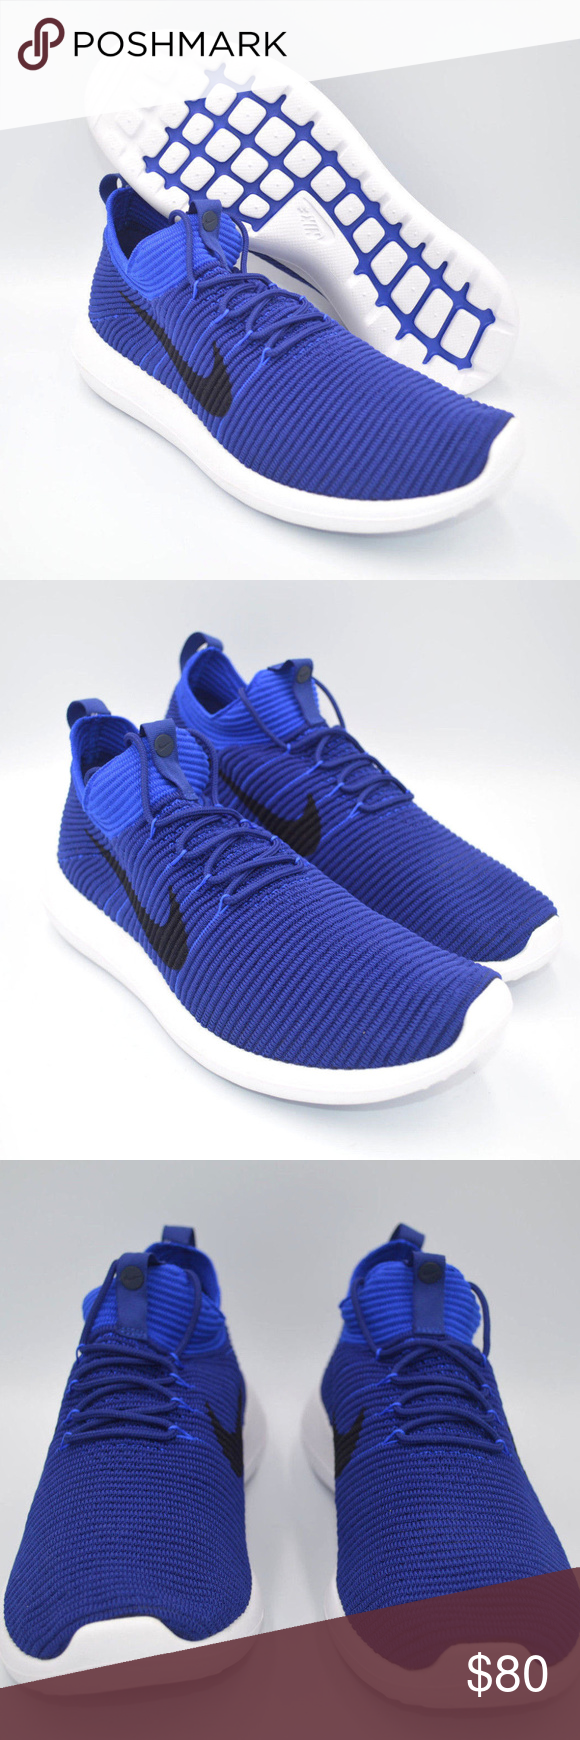 2f77ef5ff5f Nike Roshe Two Flyknit V2 Royal Blue Mens Shoes Size  Multi-Size Color  Deep  Royal   Obsidian-Racer Blue Style    918263-400 Condition  New with Box.